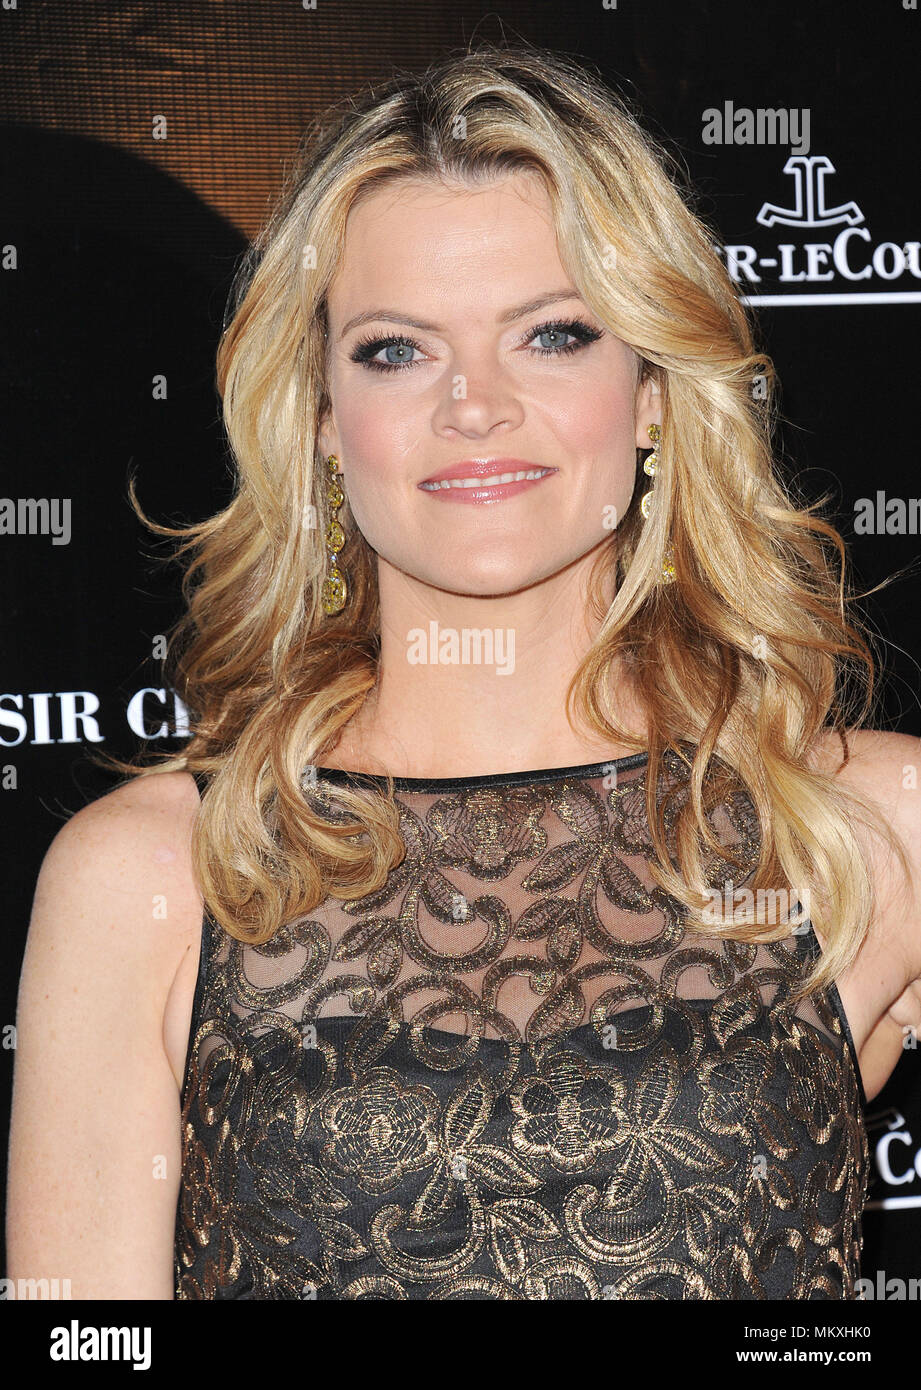 Missi Pyle _20 at the 40th Anniversary of the Academy Honorary Award Received by Sir Charles Chaplin at the Chateau Marmont in Los Angeles.Missi Pyle _20A Red Carpet Event, Vertical, USA, Film Industry, Celebrities,  Photography, Bestof, Arts Culture and Entertainment, Topix Celebrities fashion /  Vertical, Best of, Event in Hollywood Life - California,  Red Carpet and backstage, USA, Film Industry, Celebrities,  movie celebrities, TV celebrities, Music celebrities, Photography, Bestof, Arts Culture and Entertainment,  Topix, headshot, vertical, one person,, from the year , 2012, inquiry tsuni - Stock Image